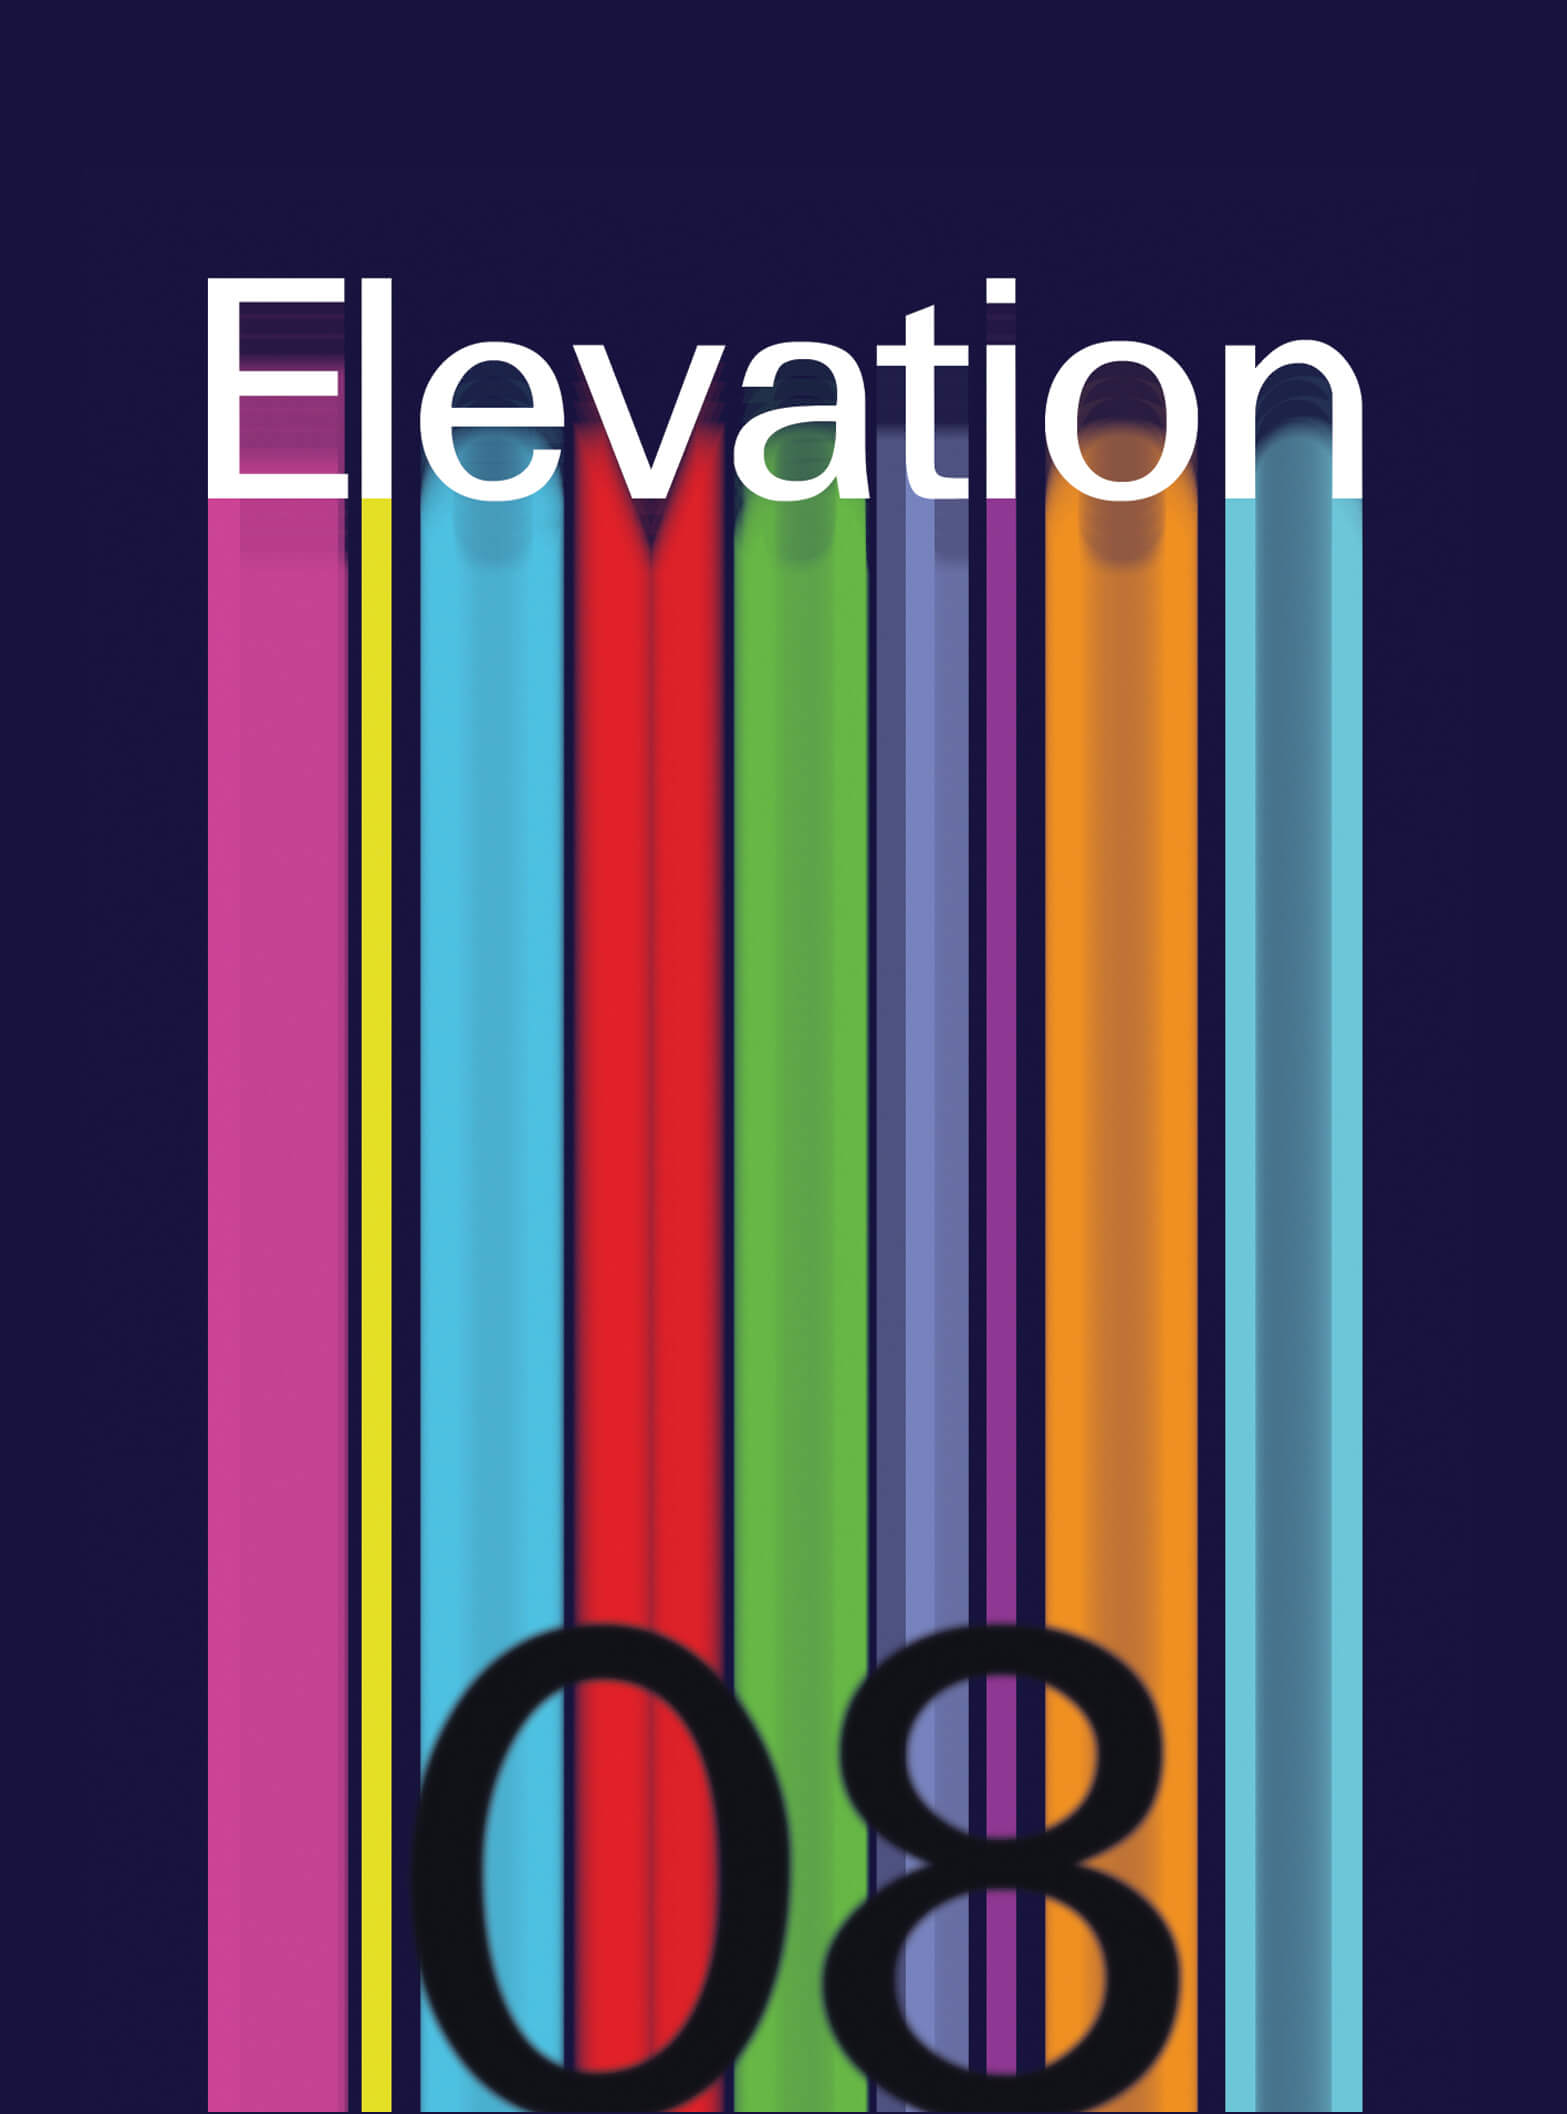 elevation logo 08